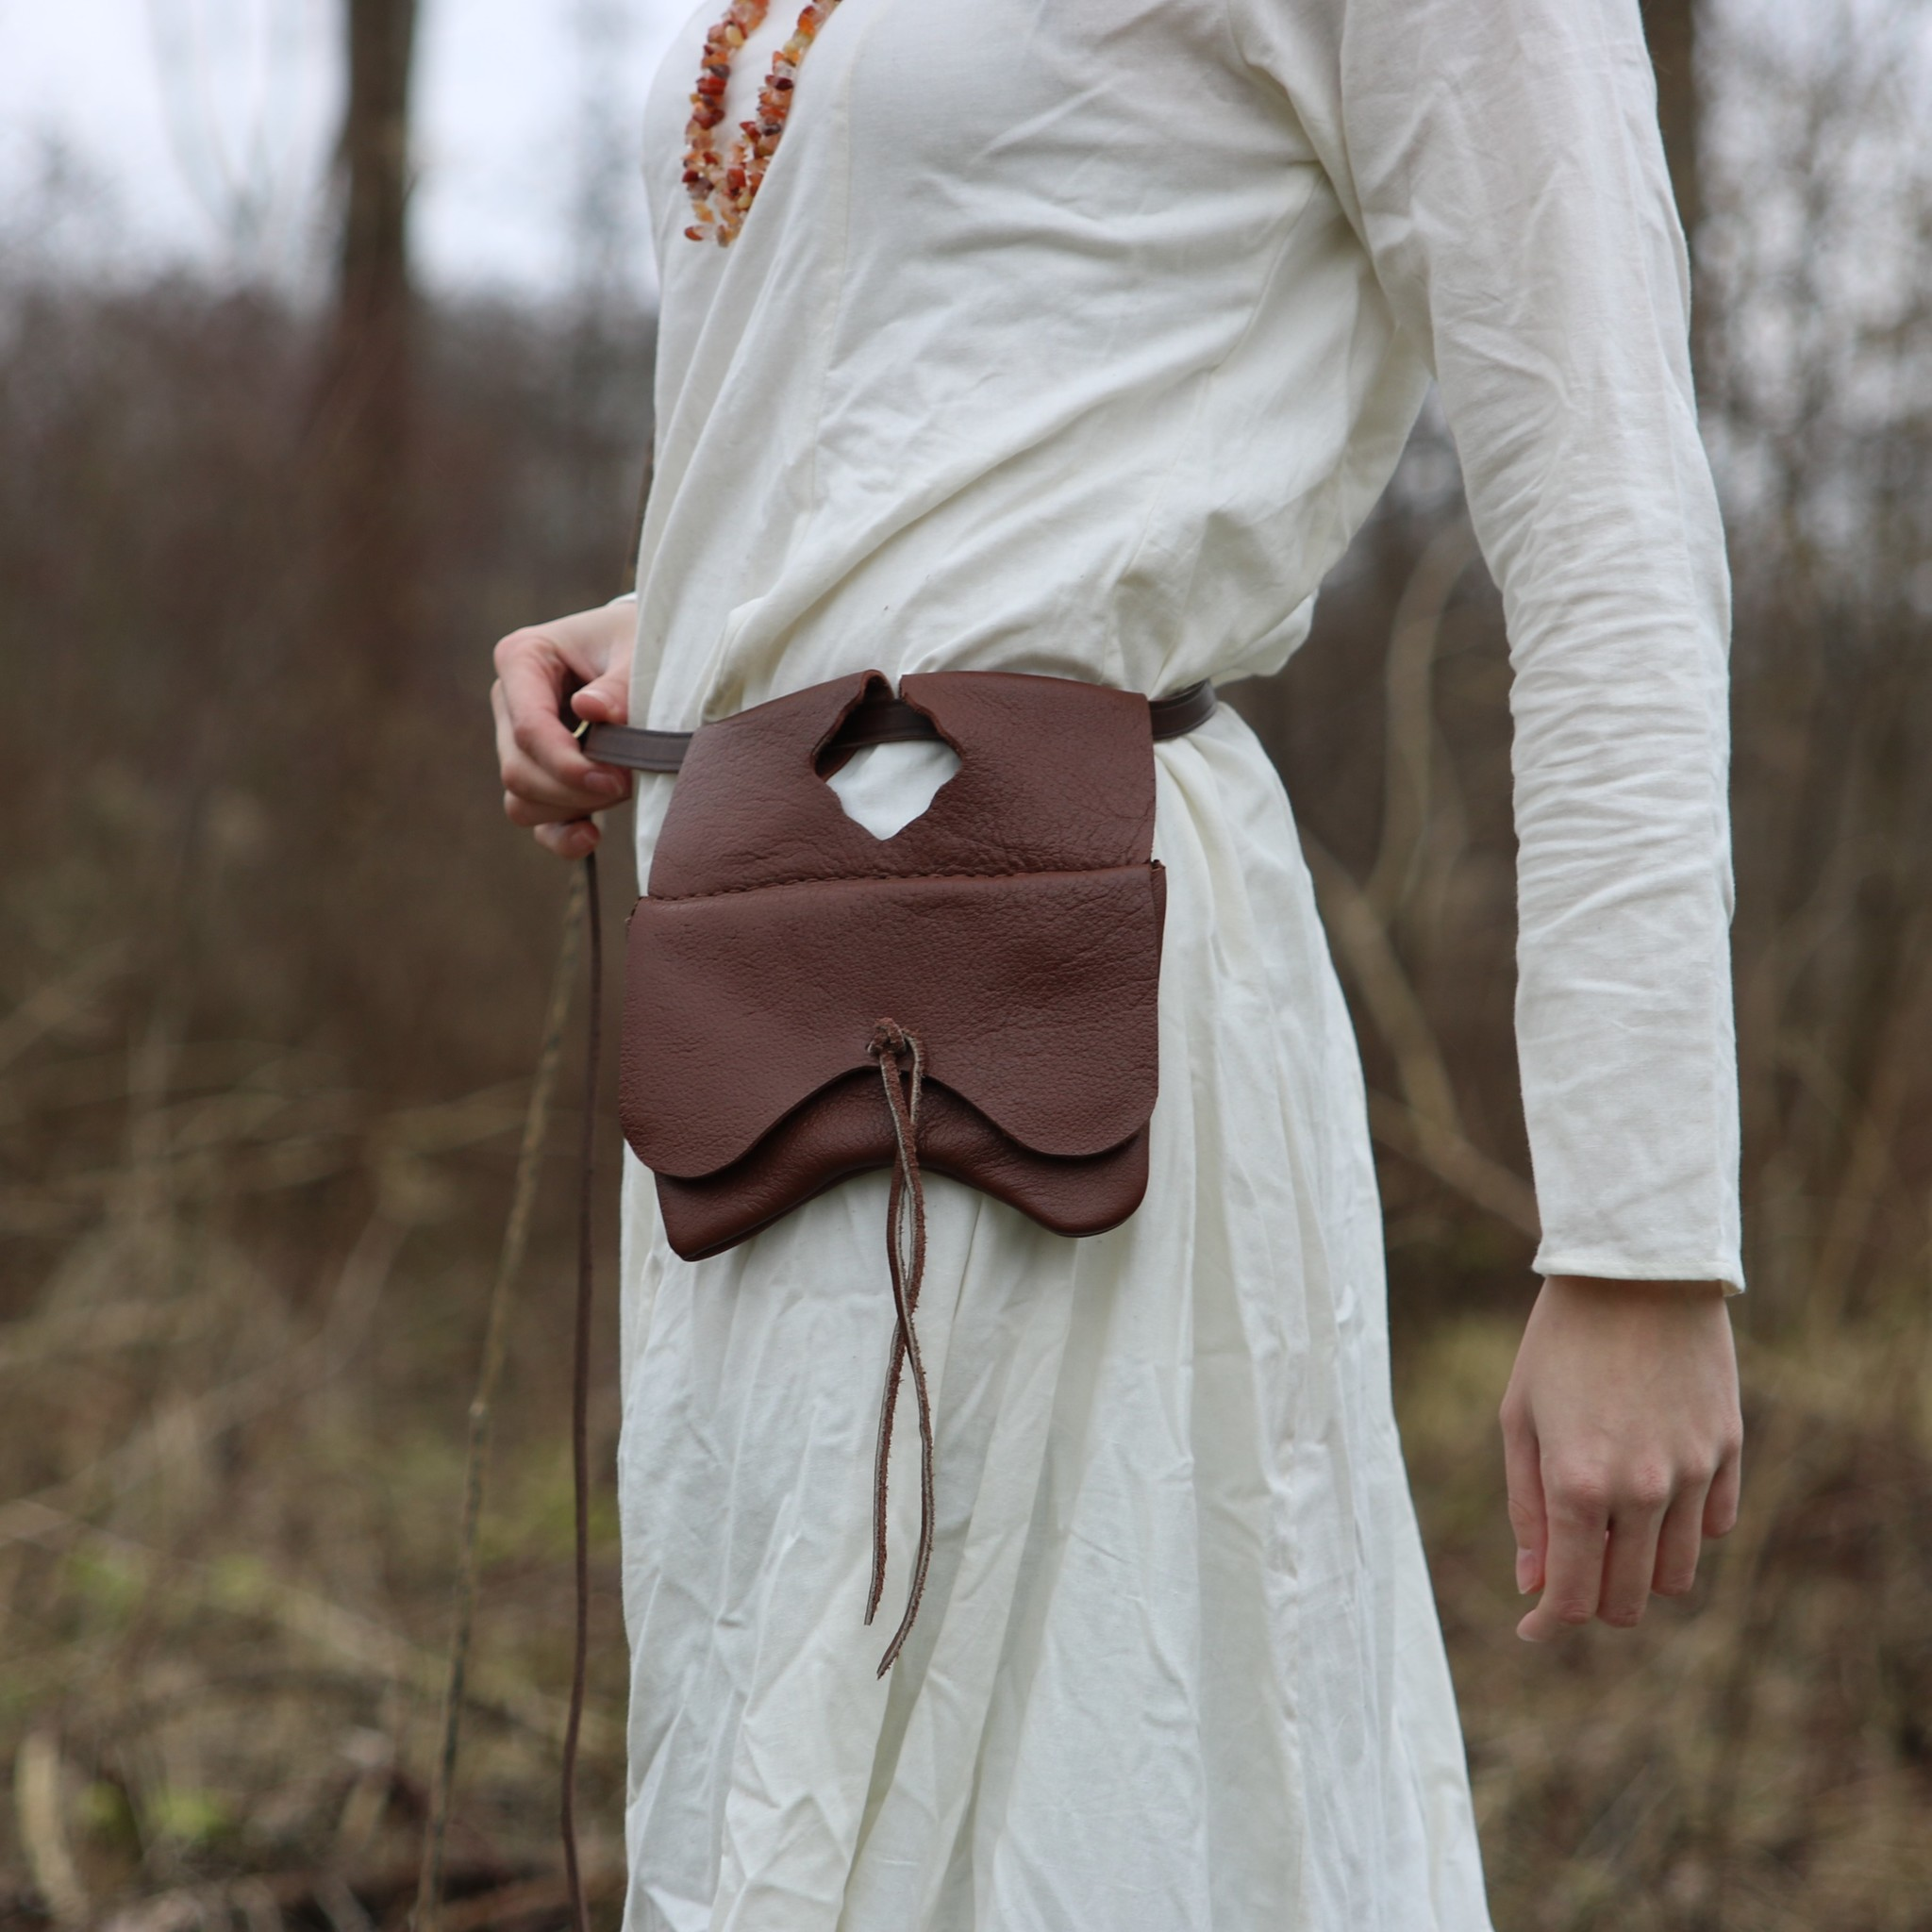 Bag with three compartments